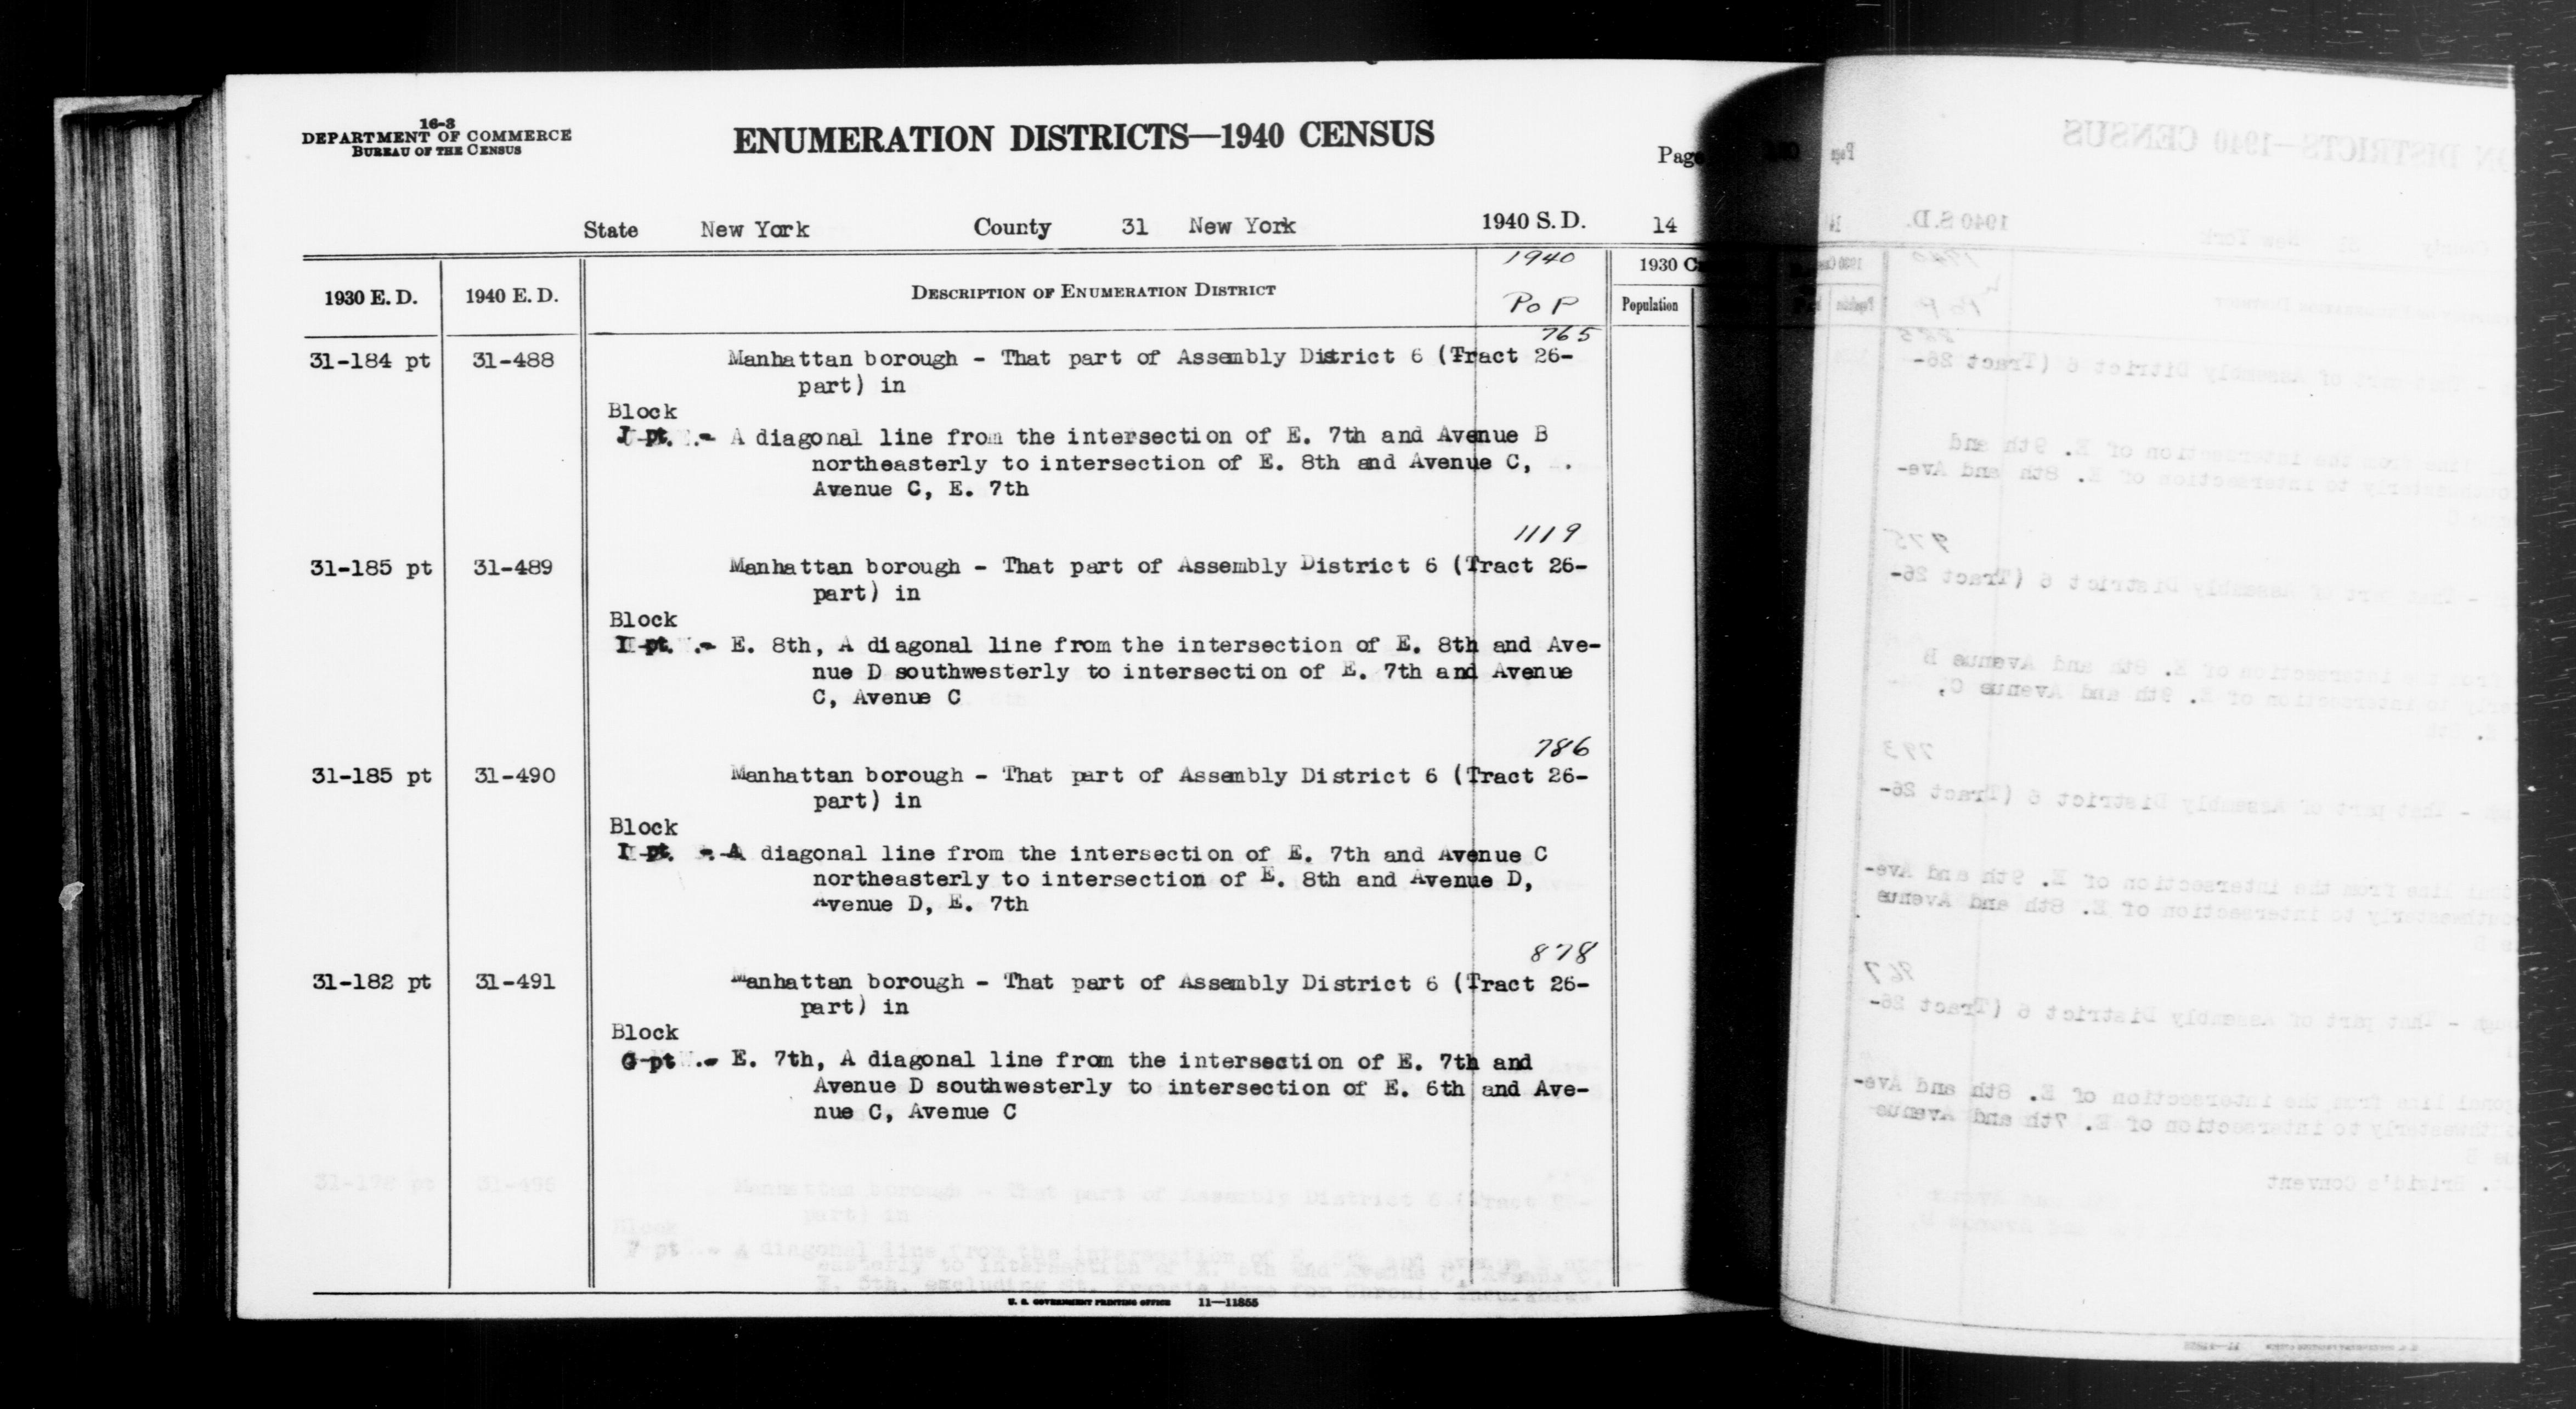 1940 Census Enumeration District Descriptions - New York - New York County - ED 31-488, ED 31-489, ED 31-490, ED 31-491